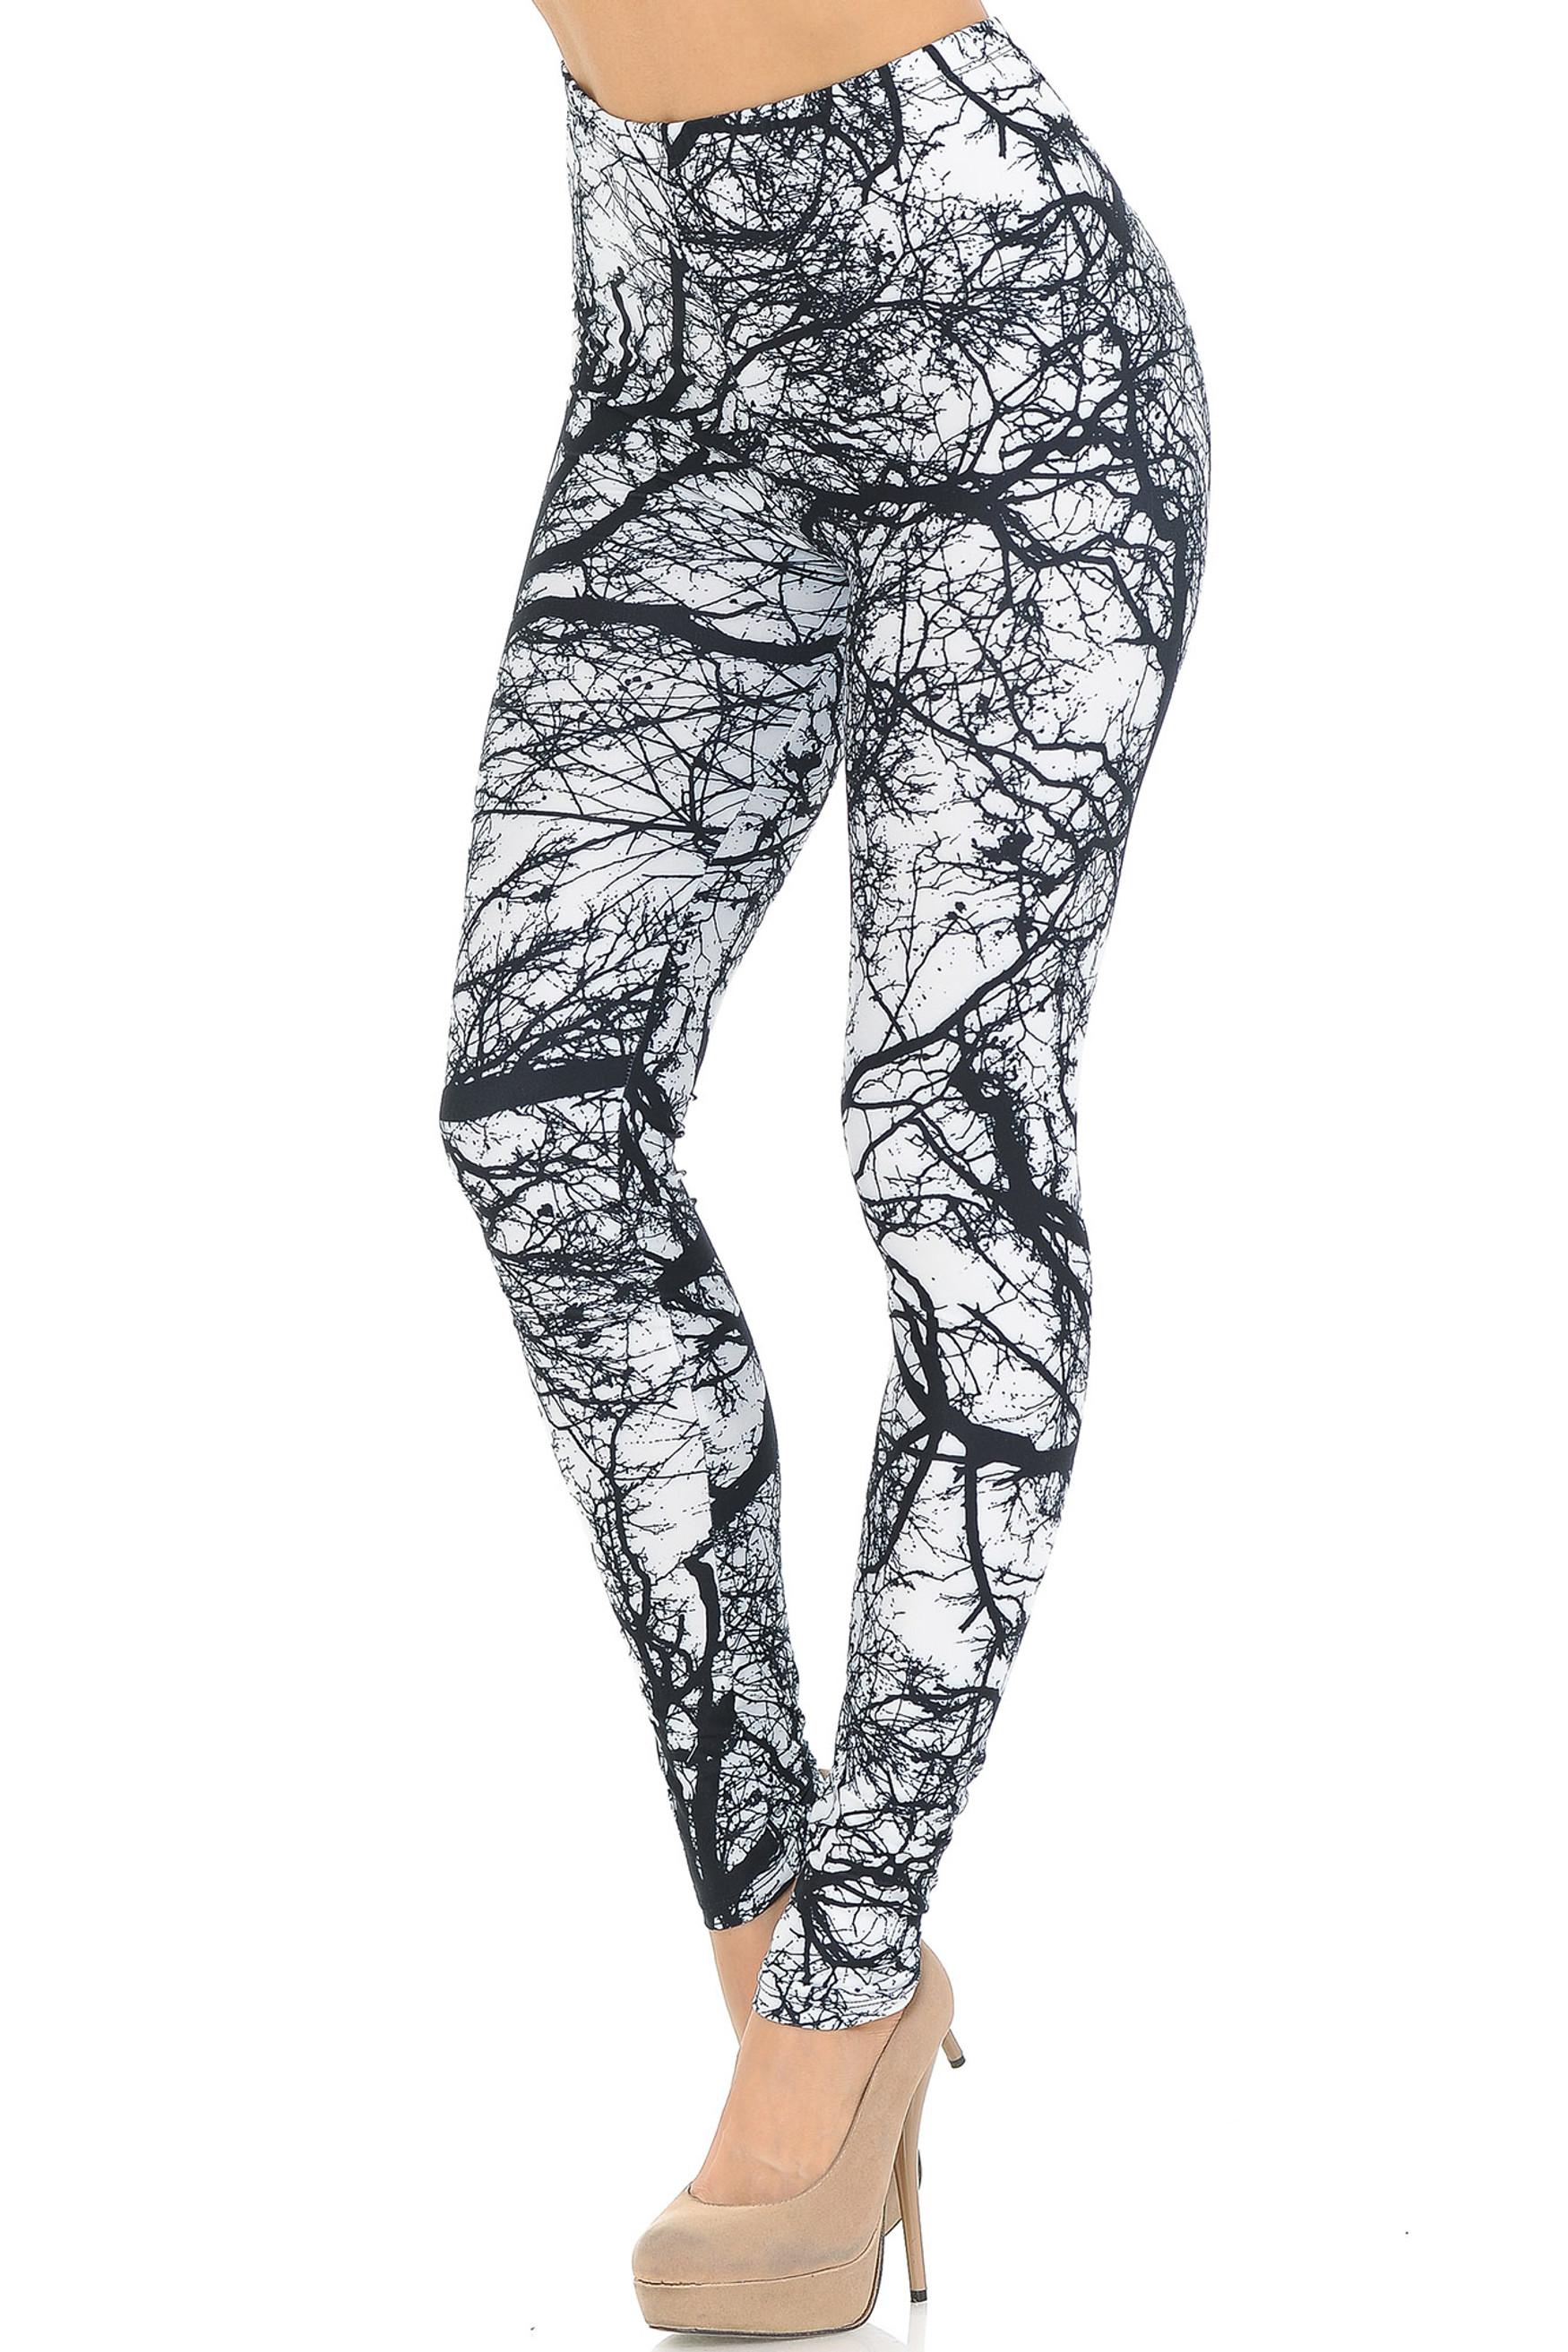 Creamy Soft Photo Negative Tree Leggings - USA Fashion™